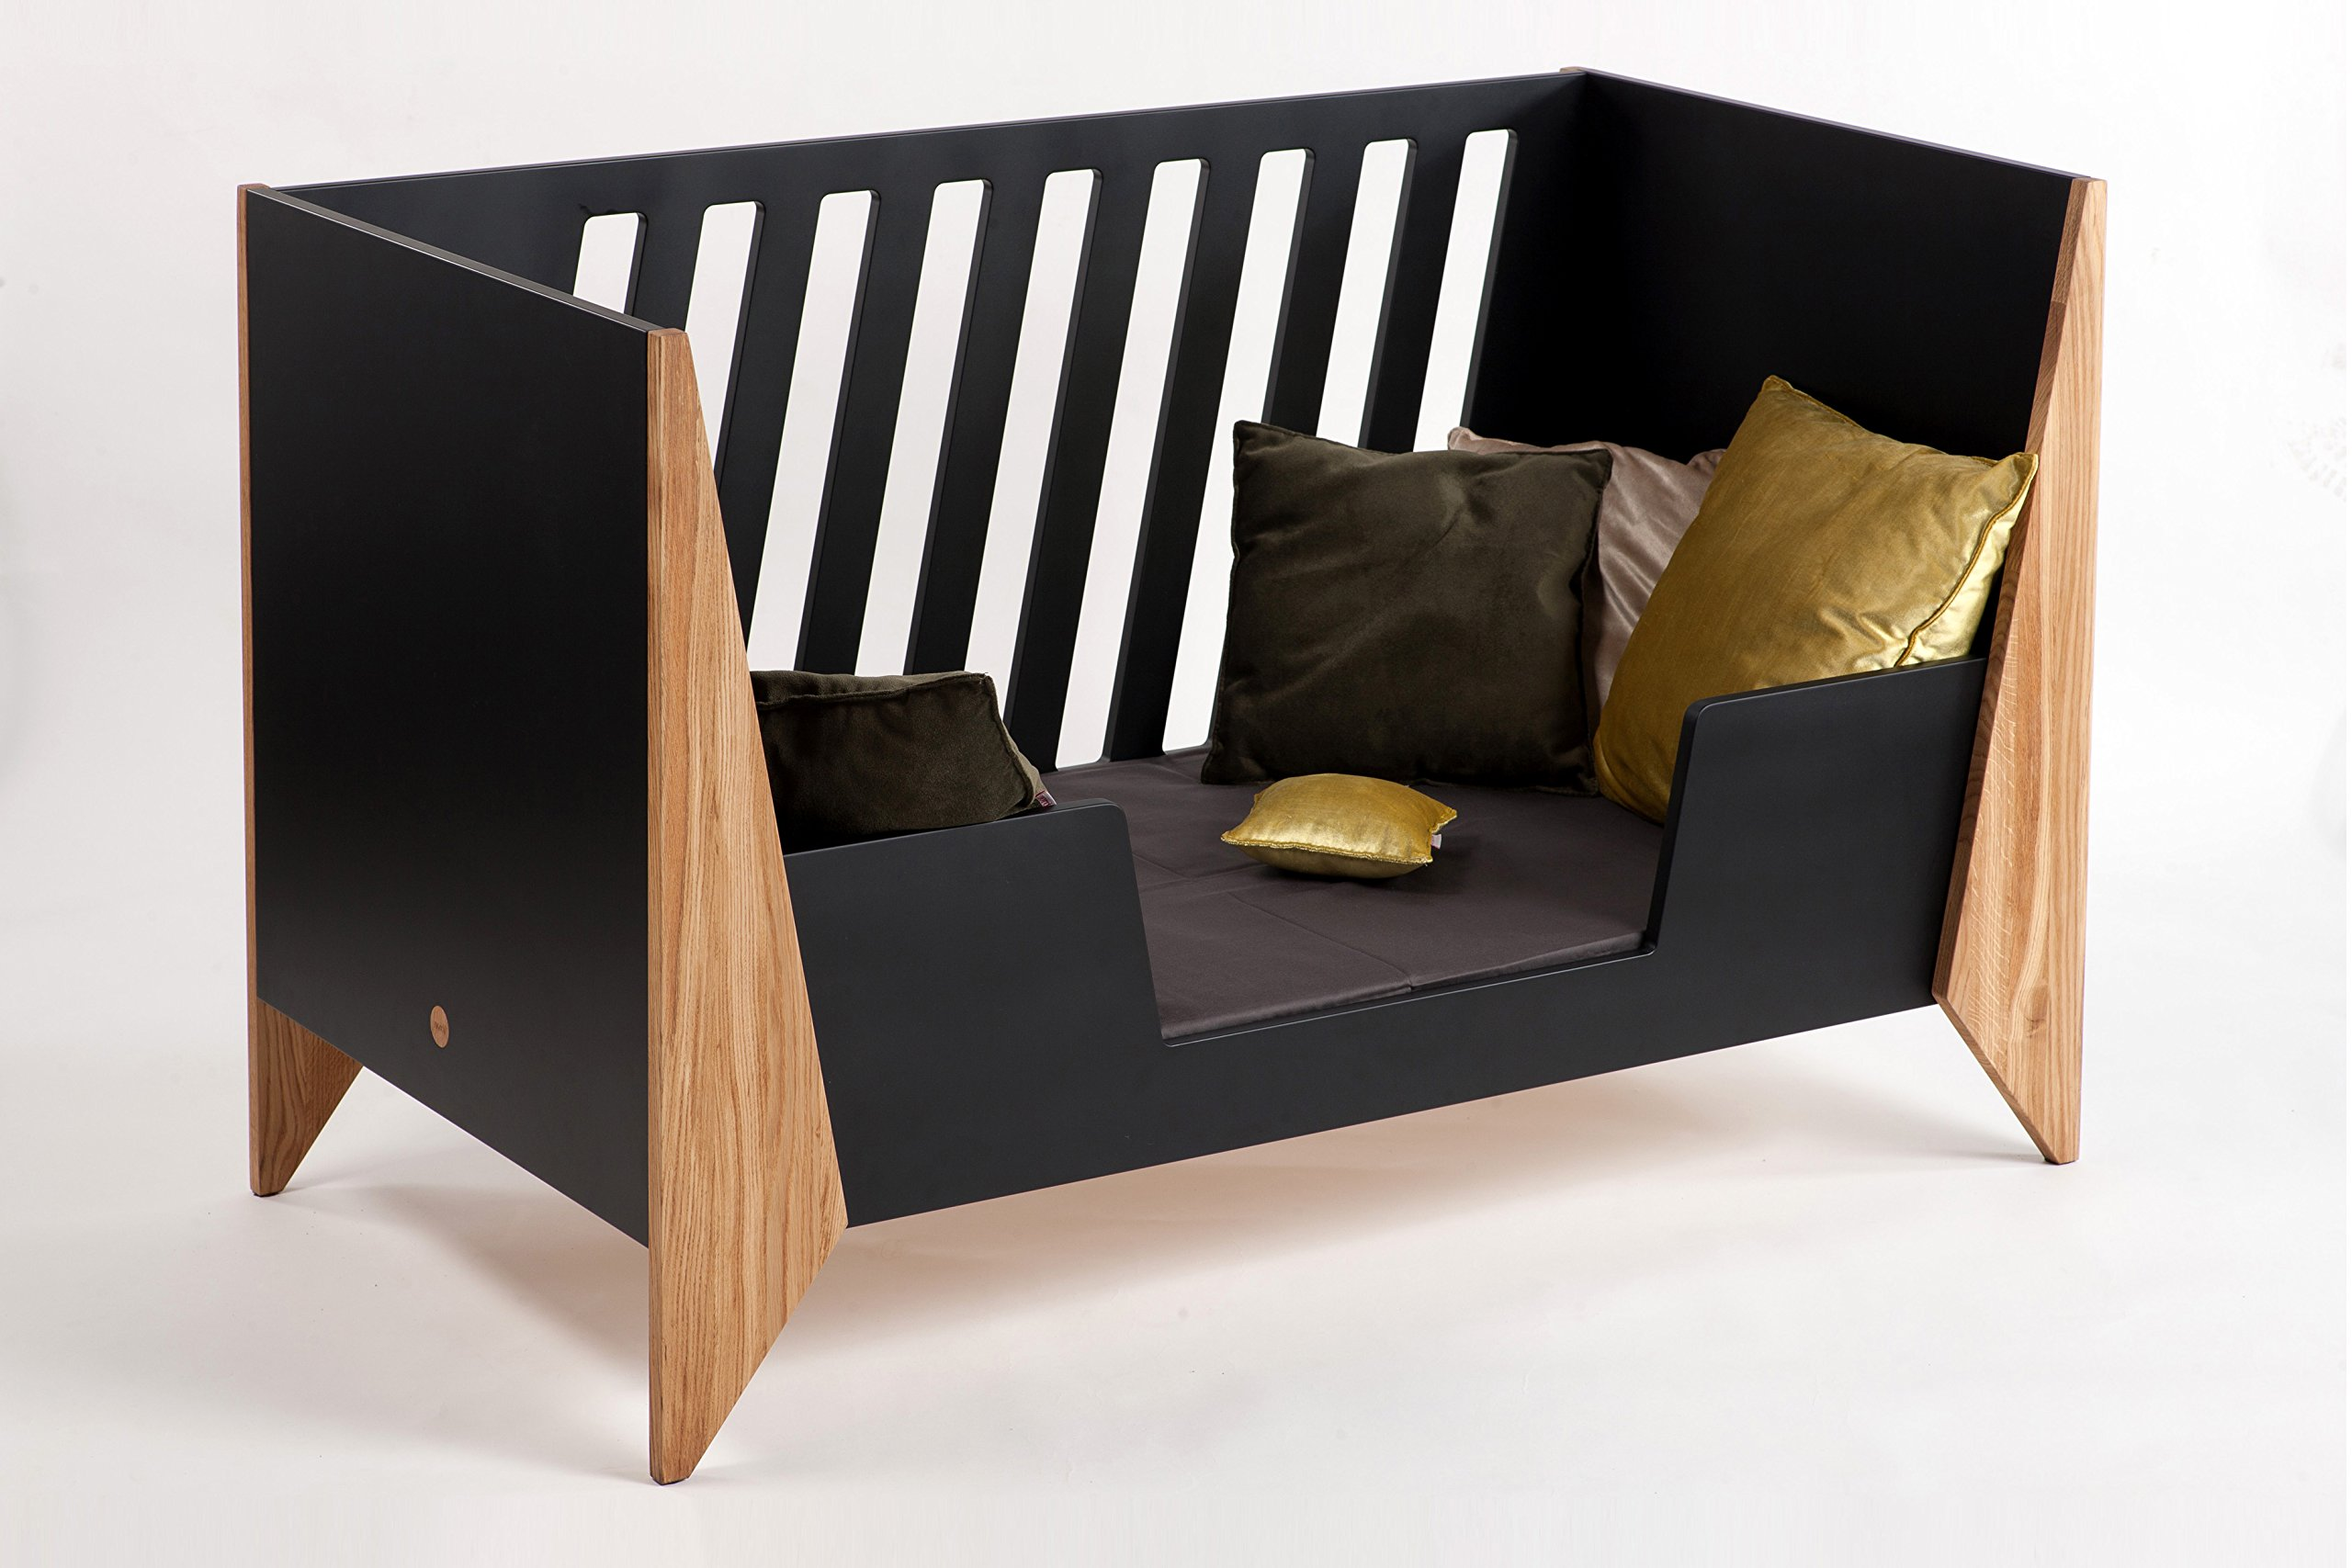 Nursery Cot (Black)  Made from high quality materials Mattress included Unique Scandinavian design 5